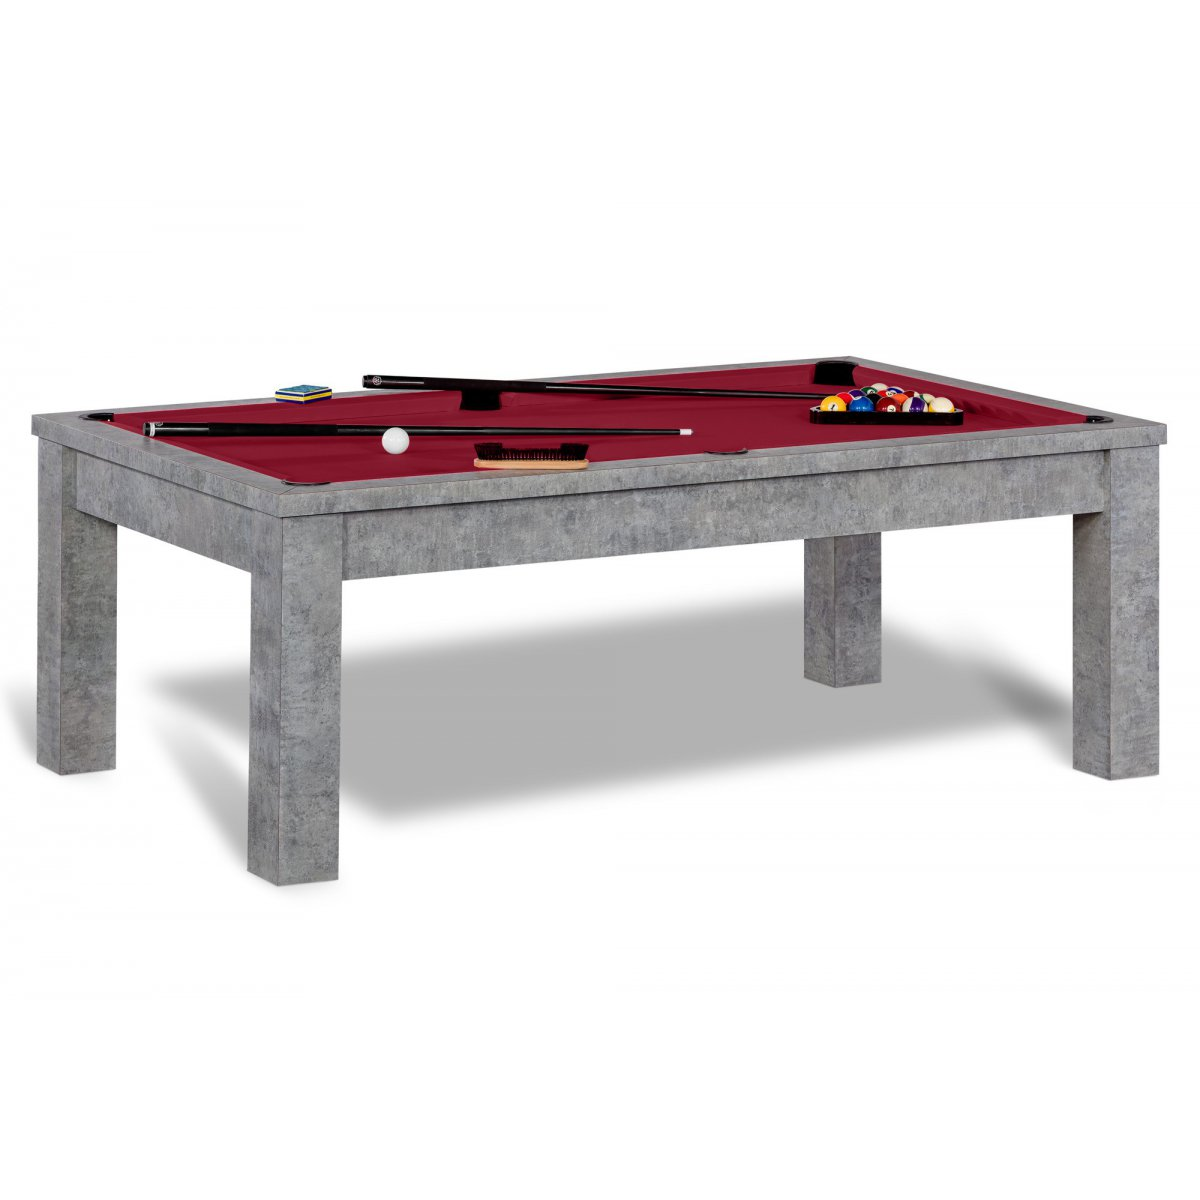 Table billard convertible panama billard anglais americain - Table de billard transformable en table de salle a manger ...